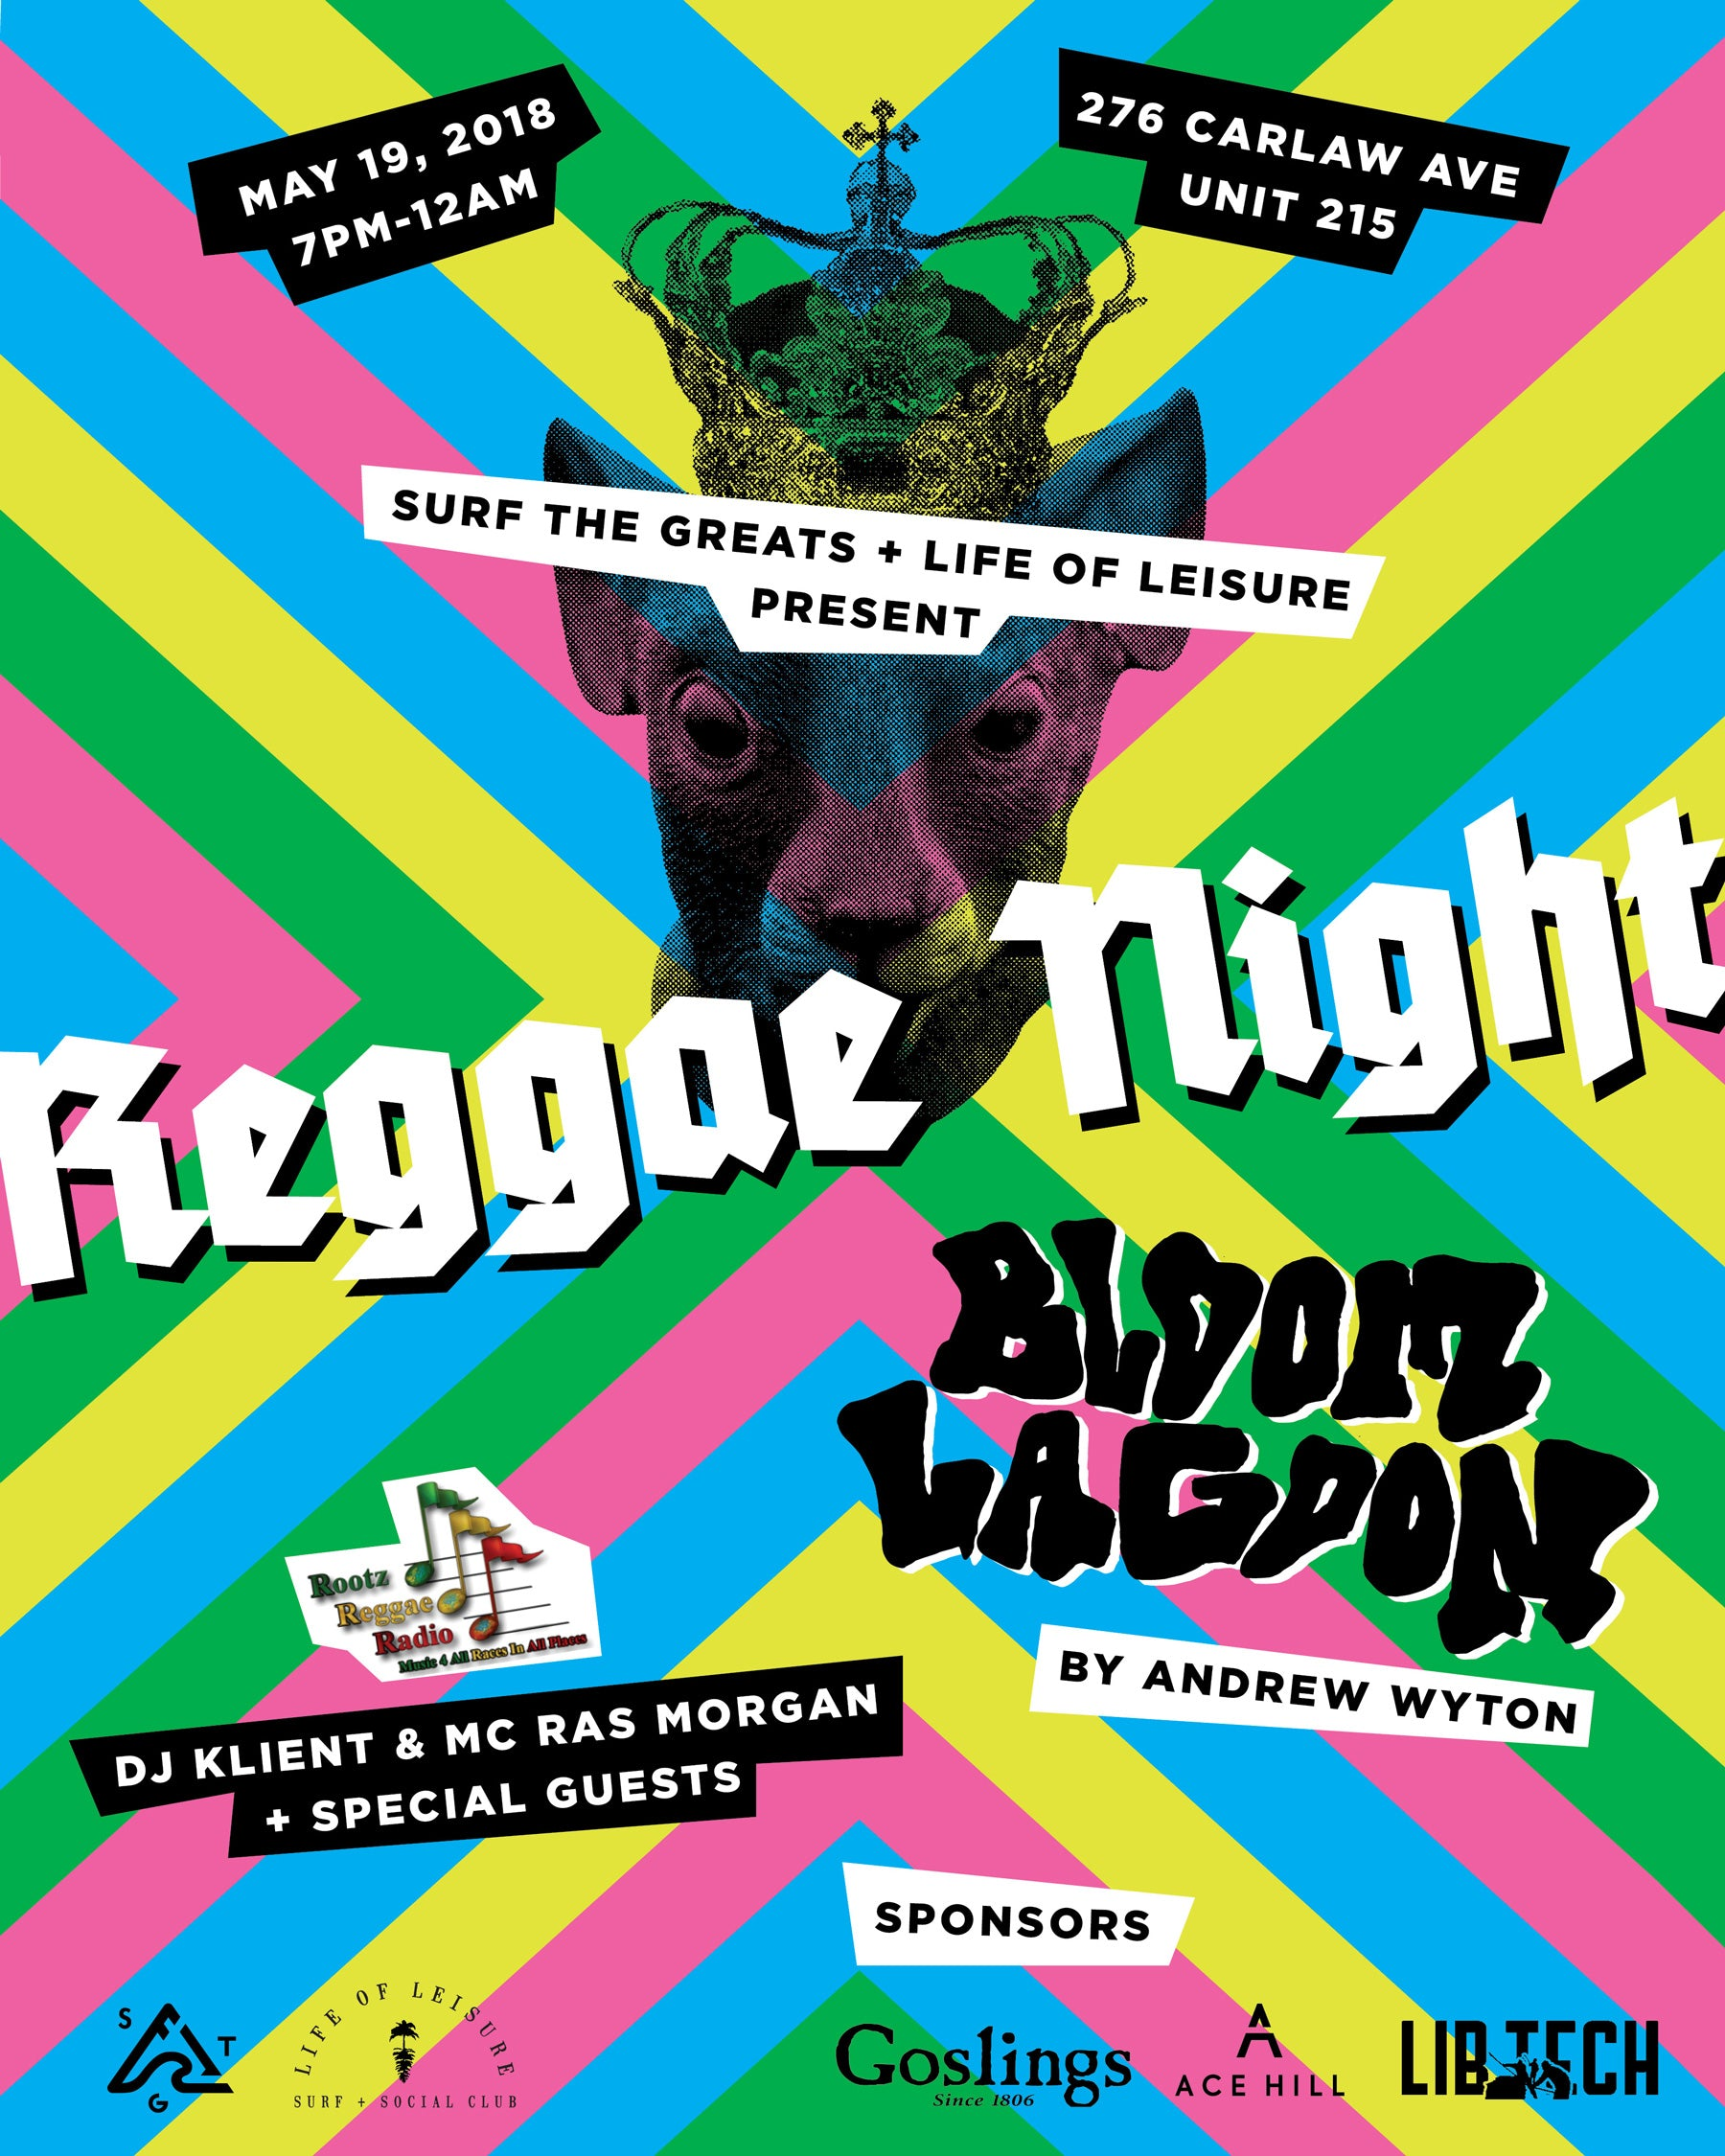 Reggae Night at Surf the Greats Toronto